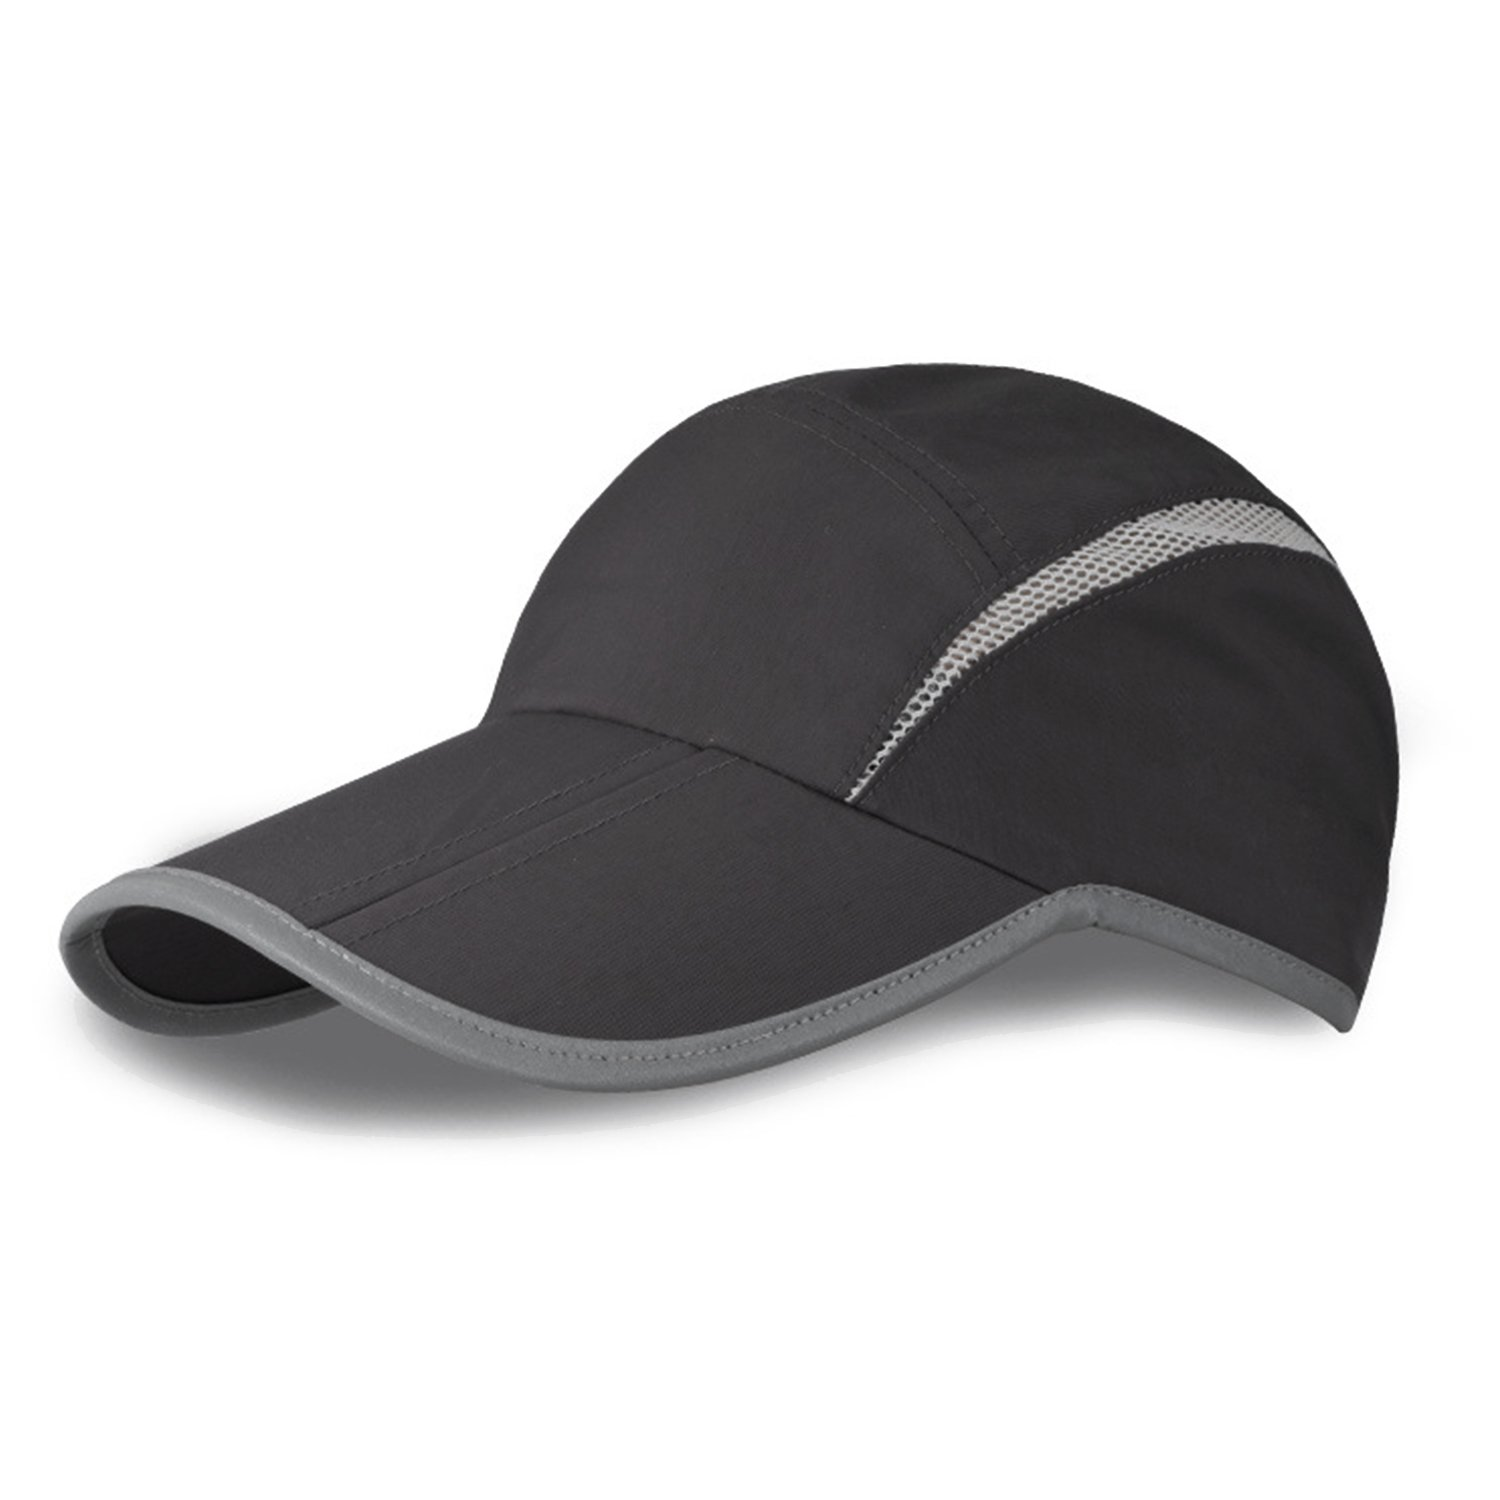 MerryJuly Baseball Cap Quick Dry Sun Hats UPF50+ Portable Travel Hats for Sports Golf Running Fishing Outdoor Research with Foldable Long Large Bill (Dark Grey)